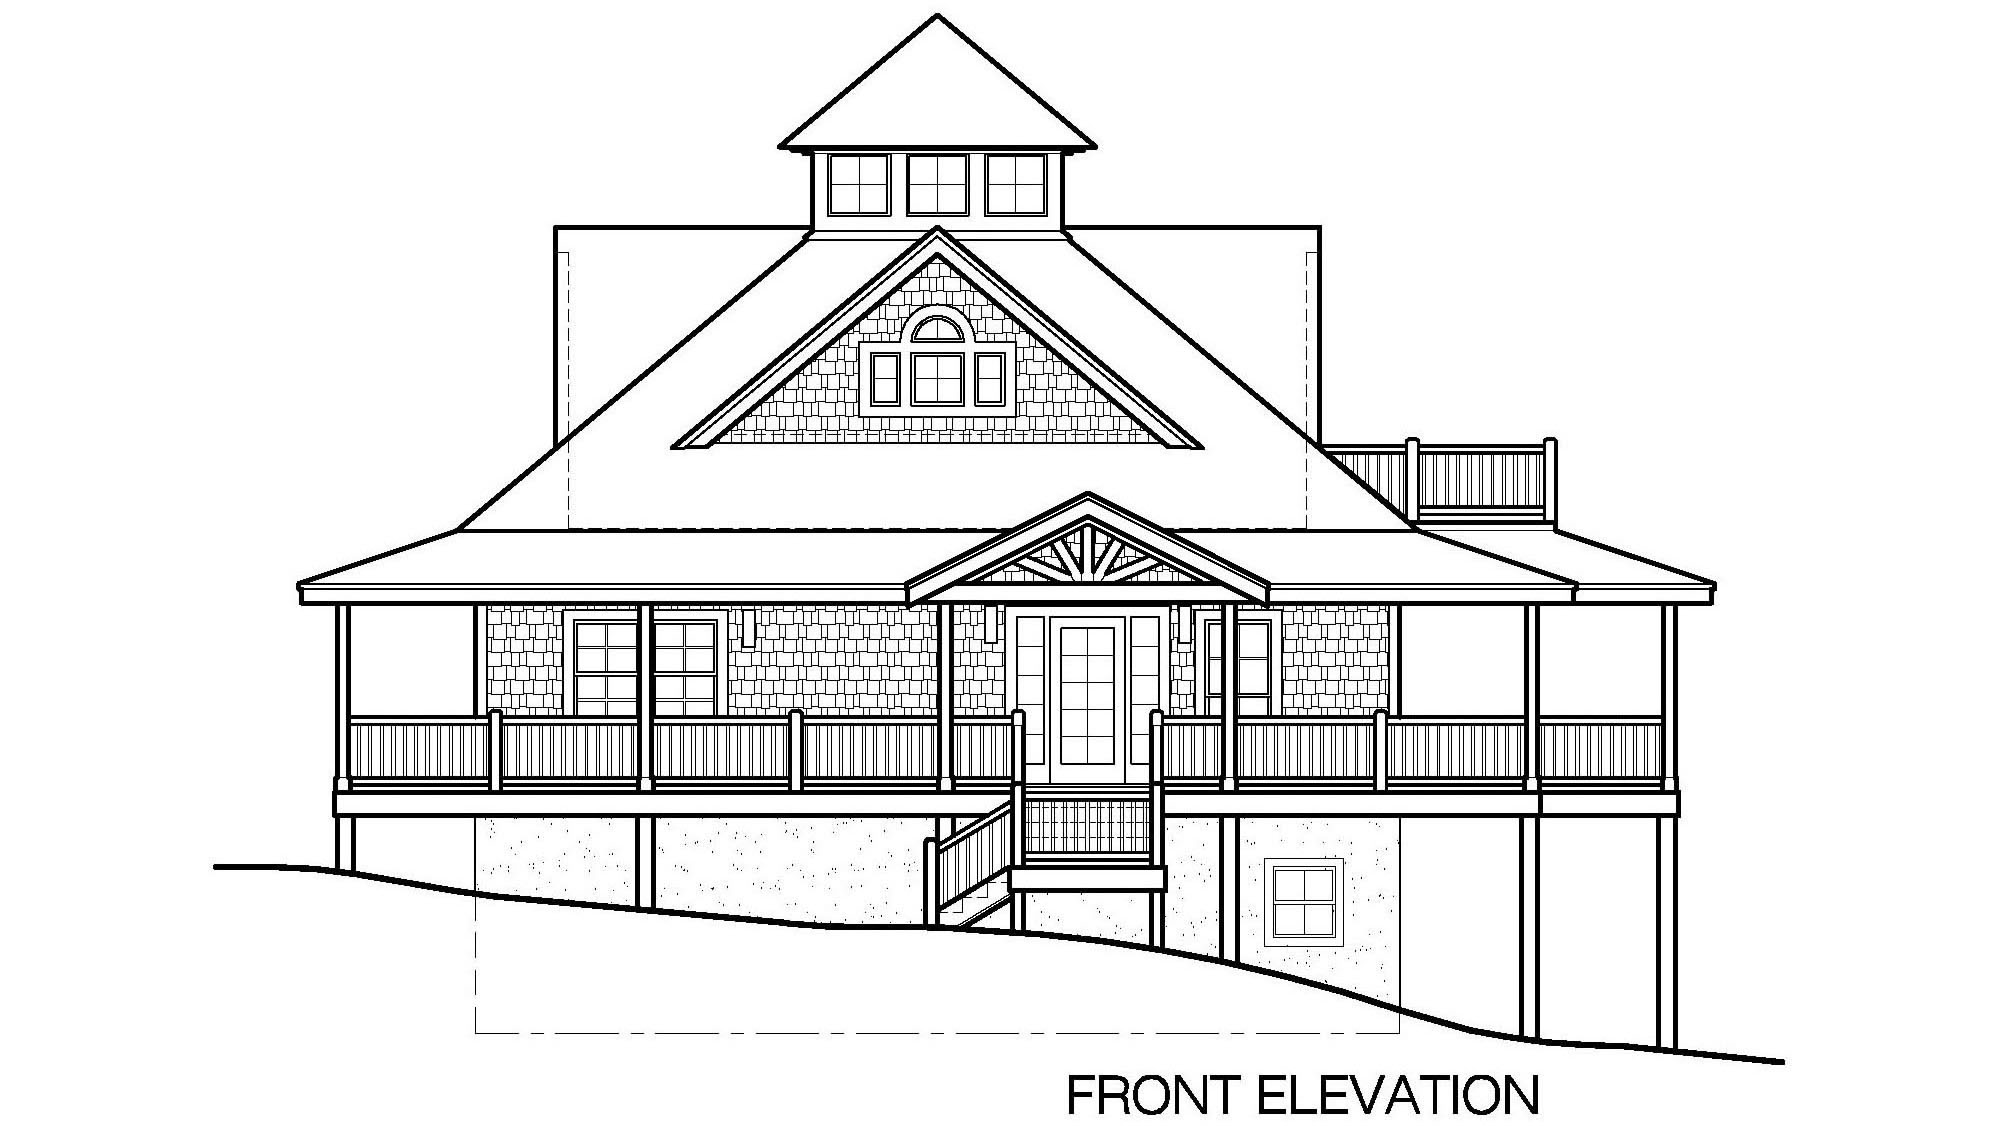 Front Elevation Of A House Definition : Roof coping definition exceptional roofing sheathing